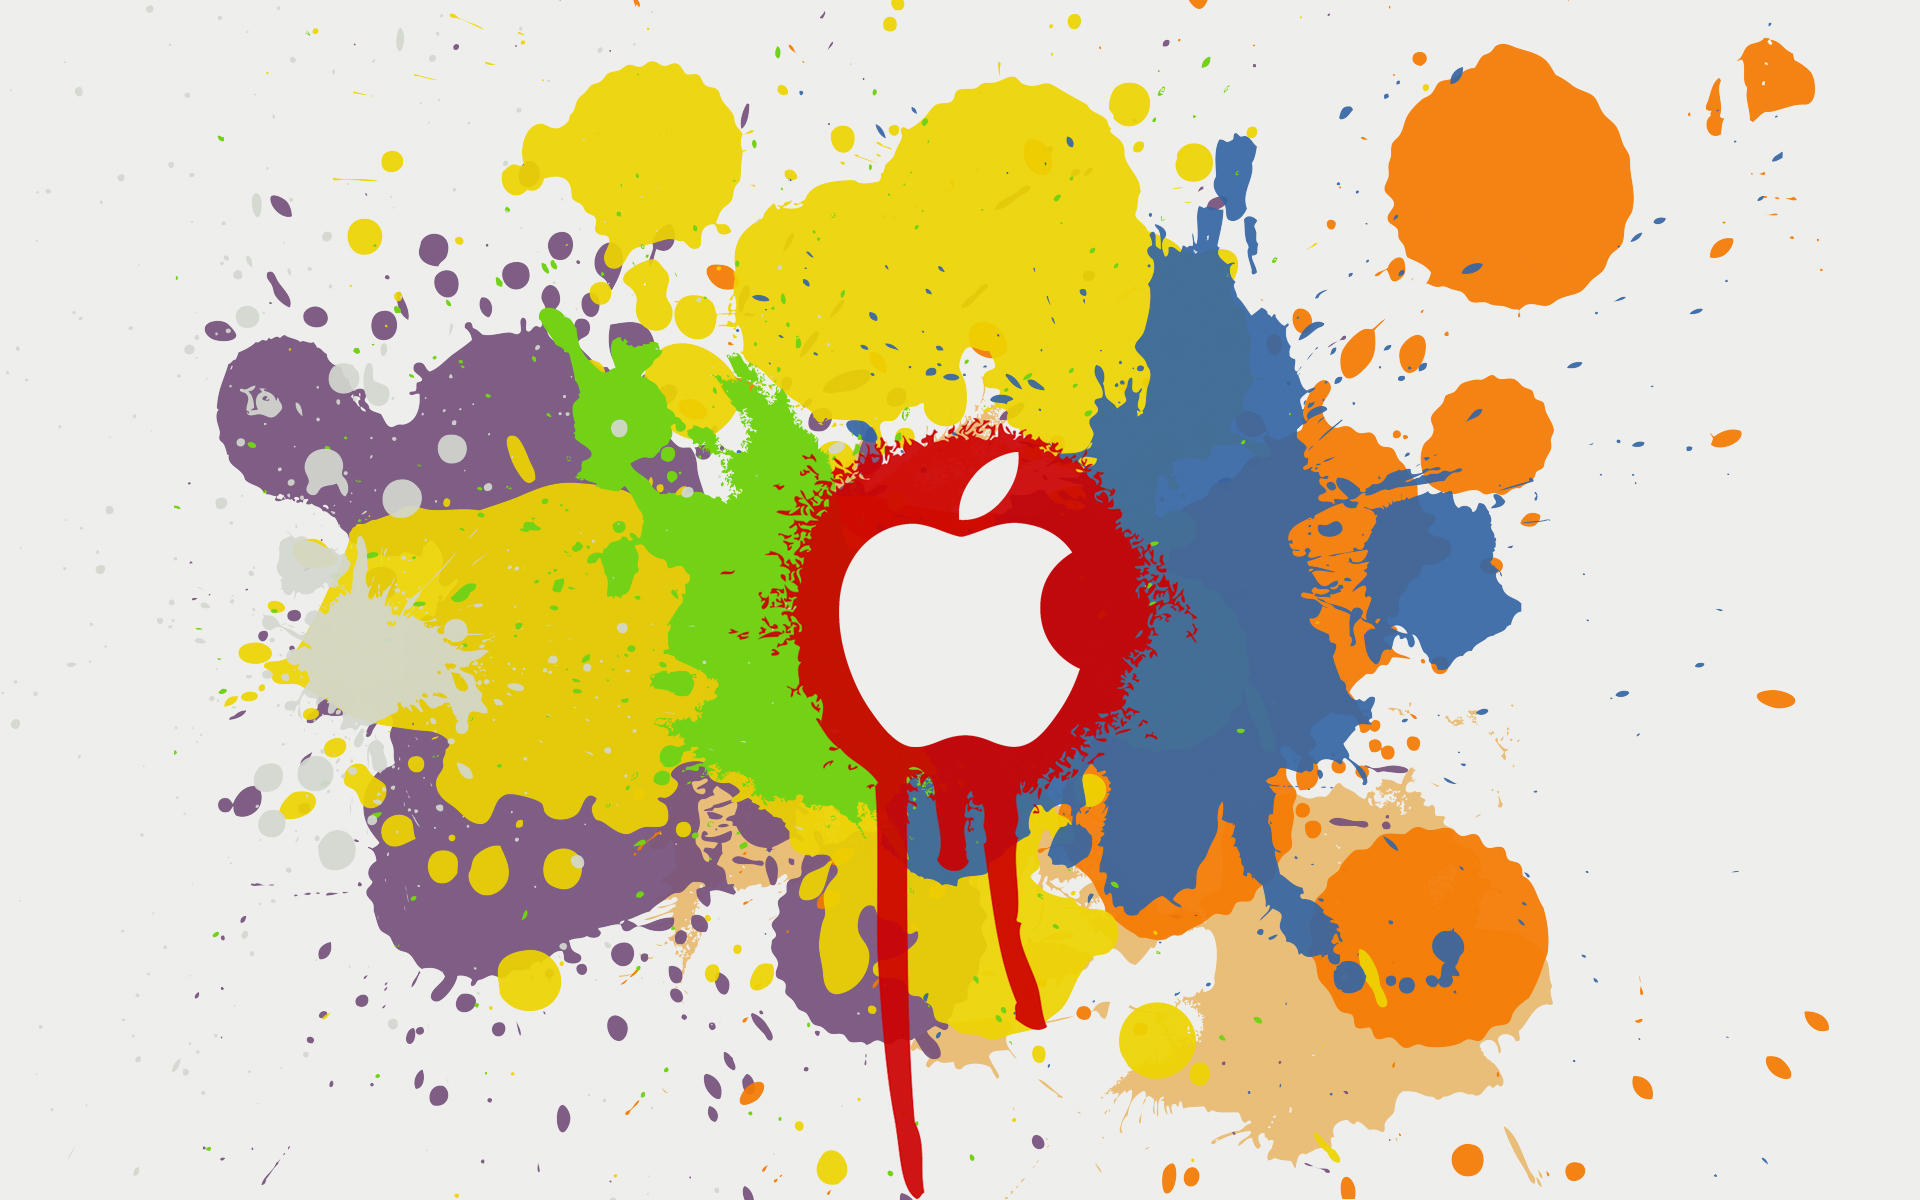 Colors Apple8598611422 - Colors Apple - Colors, Apple